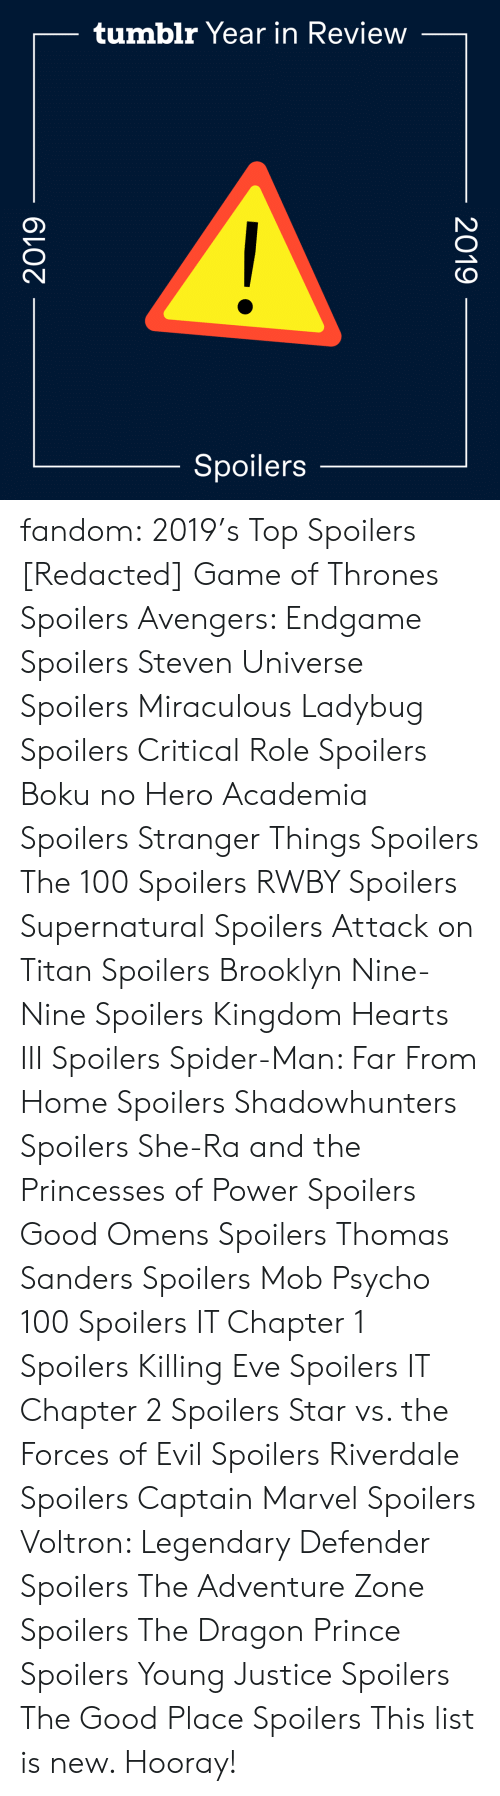 kh3: tumblr Year in Review  Spoilers  2019  2019 fandom:  2019's Top Spoilers  [Redacted]  Game of Thrones Spoilers  Avengers: Endgame Spoilers  Steven Universe Spoilers  Miraculous Ladybug Spoilers  Critical Role Spoilers  Boku no Hero Academia Spoilers  Stranger Things Spoilers  The 100 Spoilers  RWBY Spoilers  Supernatural Spoilers  Attack on Titan Spoilers  Brooklyn Nine-Nine Spoilers  Kingdom Hearts III Spoilers  Spider-Man: Far From Home Spoilers  Shadowhunters Spoilers  She-Ra and the Princesses of Power Spoilers  Good Omens Spoilers  Thomas Sanders Spoilers  Mob Psycho 100 Spoilers  IT Chapter 1 Spoilers  Killing Eve Spoilers  IT Chapter 2 Spoilers  Star vs. the Forces of Evil Spoilers  Riverdale Spoilers  Captain Marvel Spoilers  Voltron: Legendary Defender Spoilers  The Adventure Zone Spoilers  The Dragon Prince Spoilers  Young Justice Spoilers  The Good Place Spoilers This list is new. Hooray!